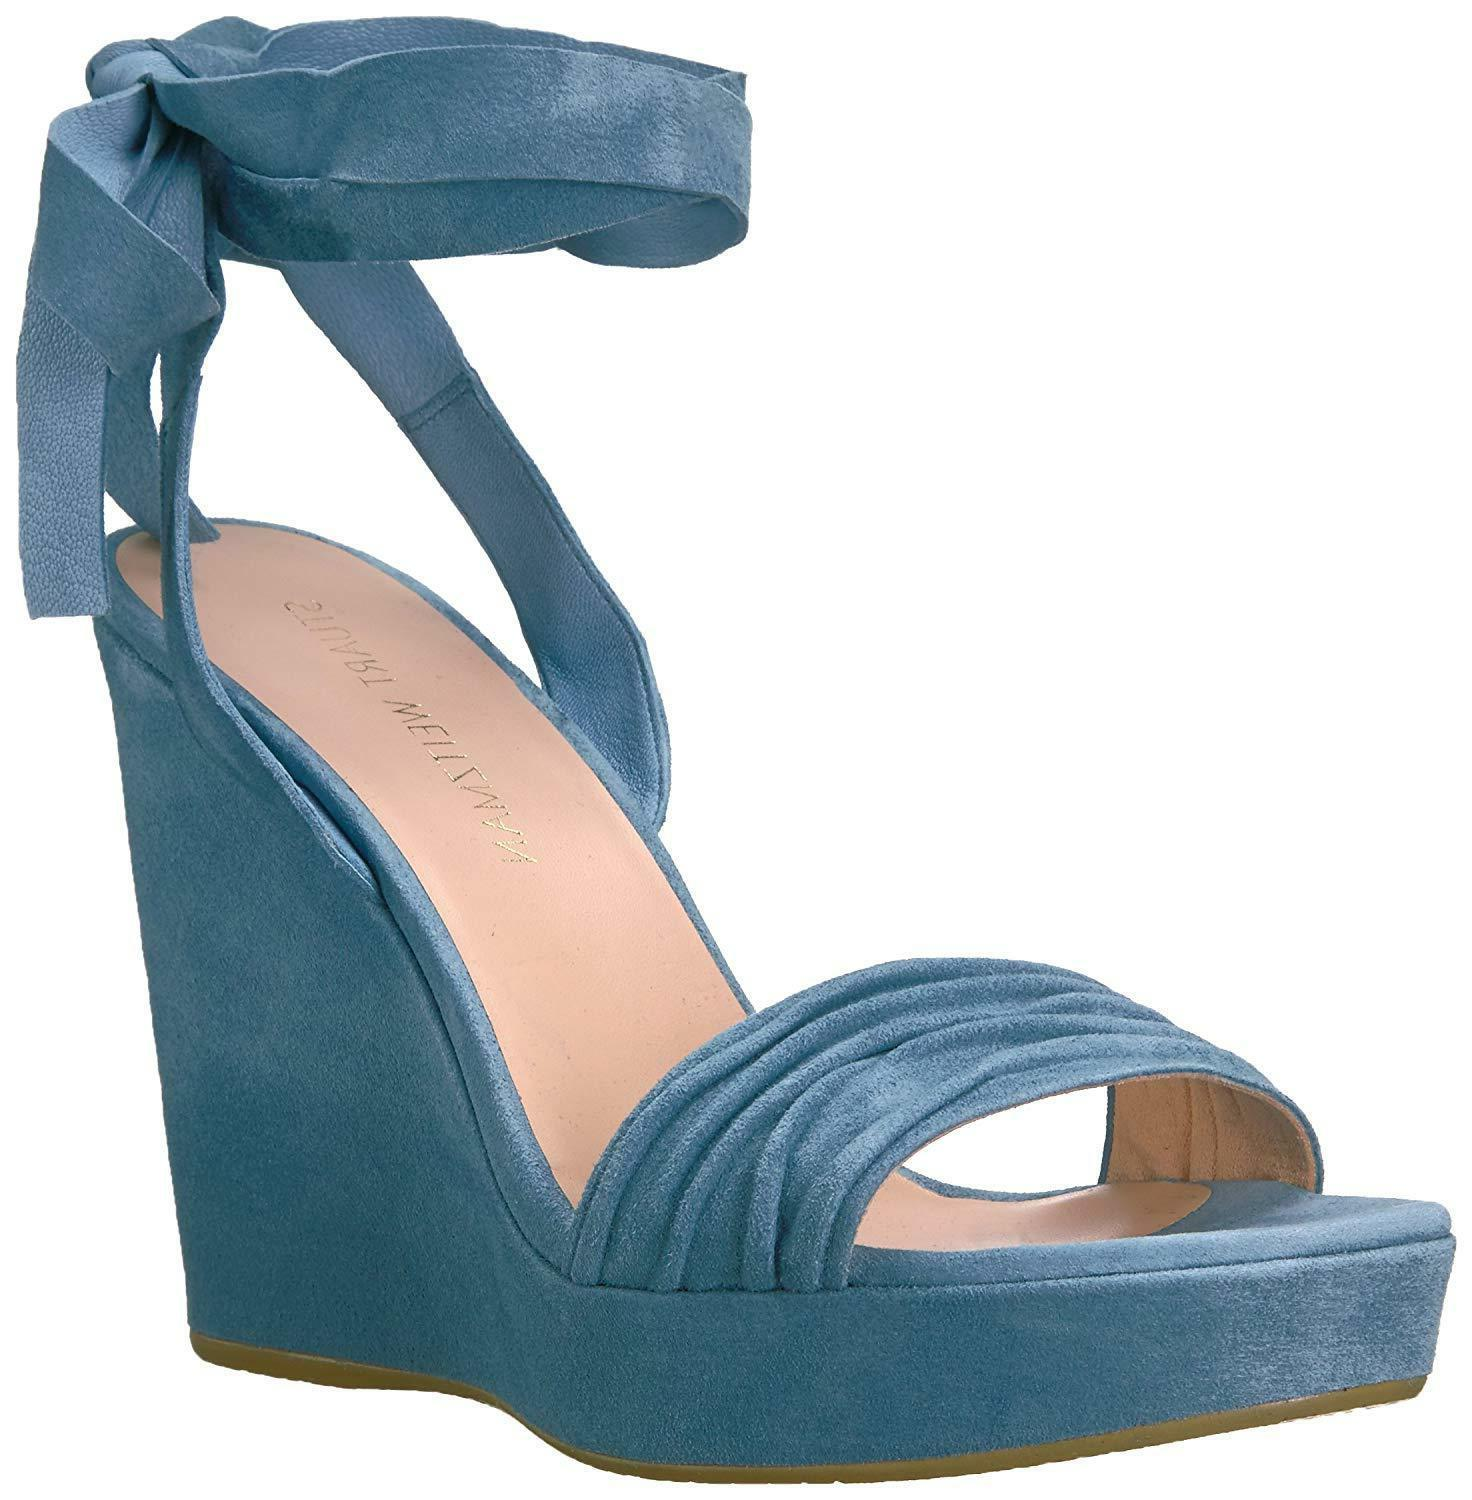 Stuart Weitzman Women's Wedge Sandal Lt Jeans Color 8M US